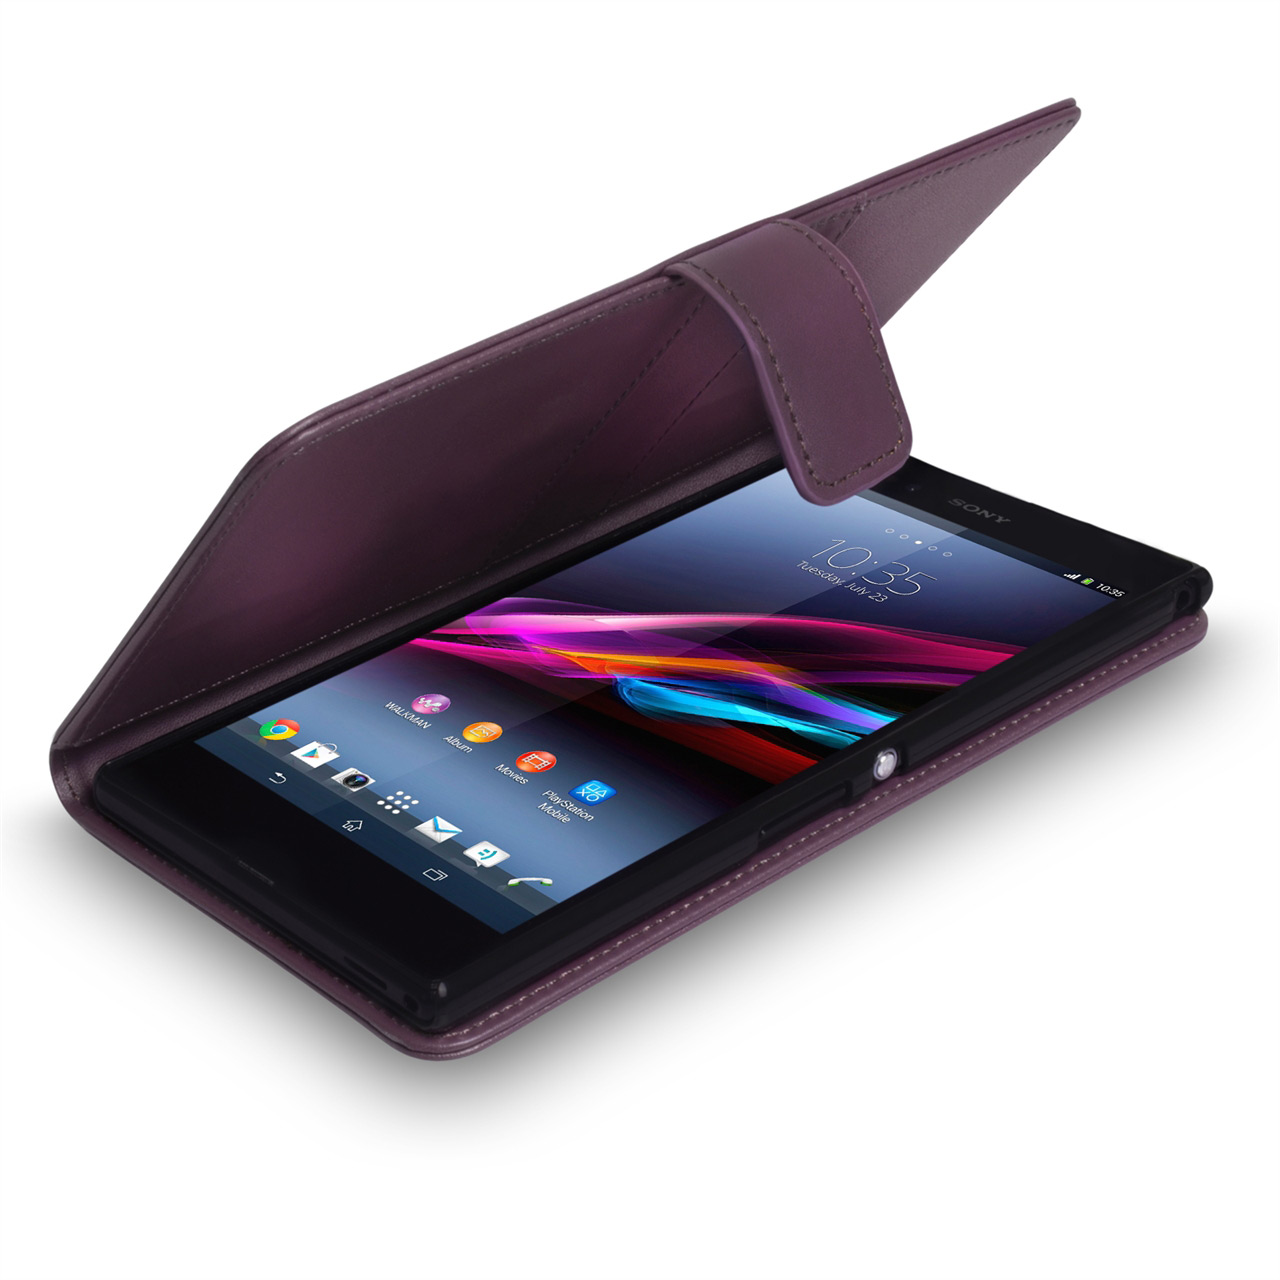 YouSave Accessories Sony Xperia Z Ultra Leather Effect Wallet - Purple